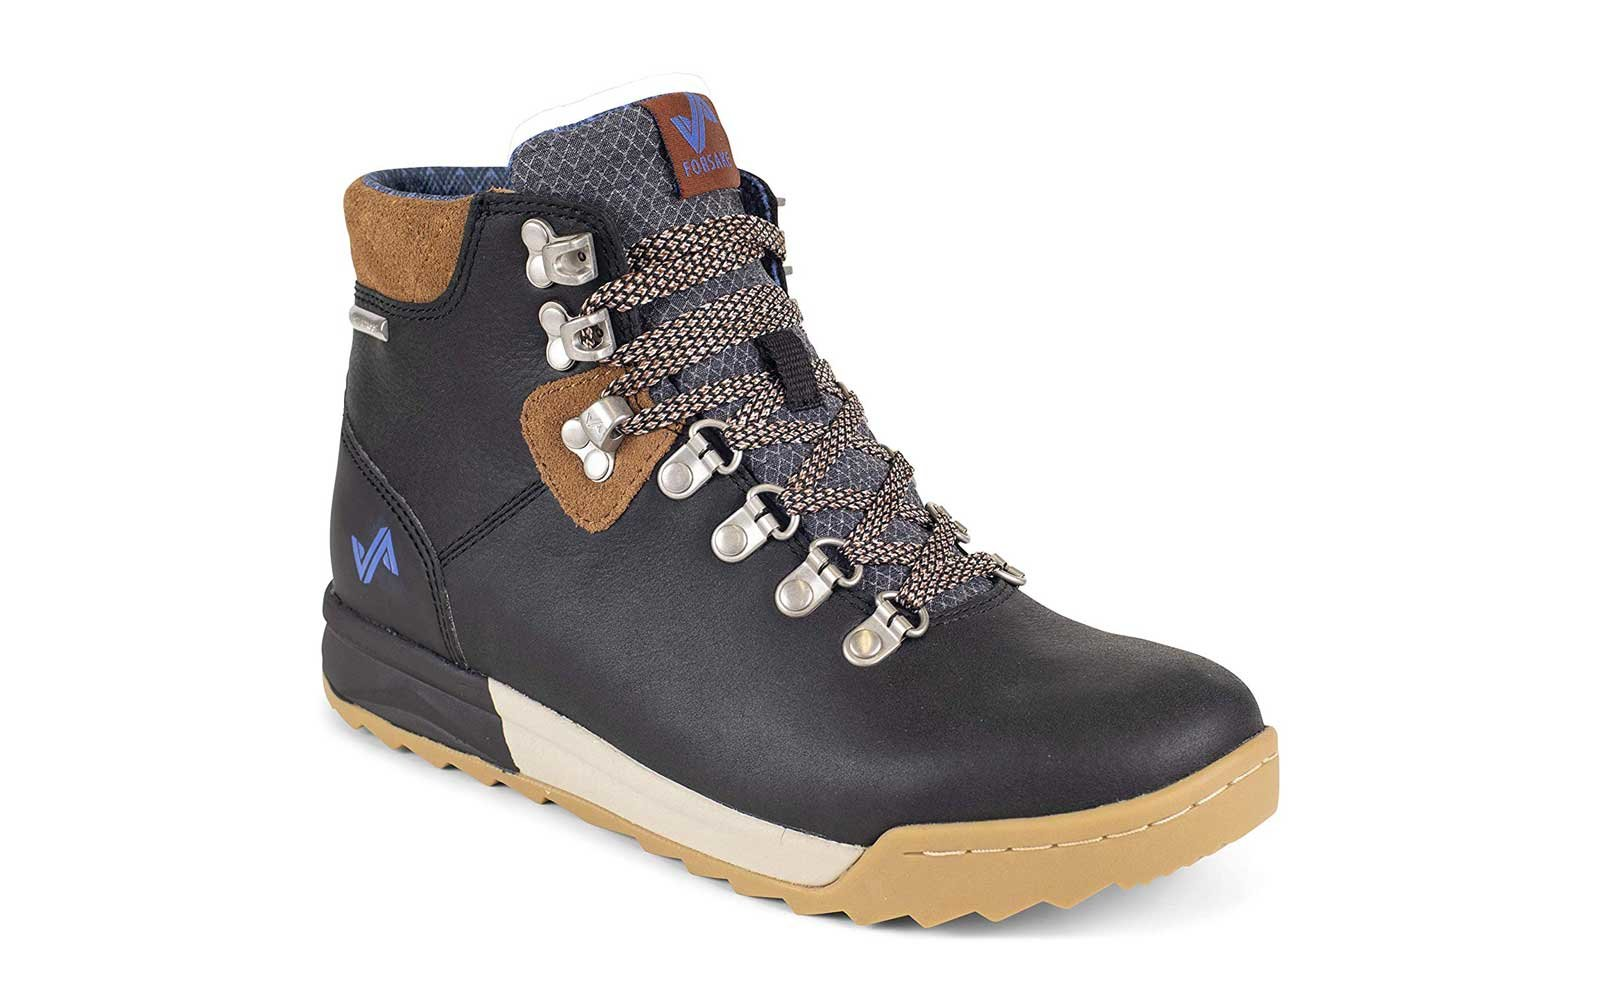 a41f5def83f 11 Cute Hiking Boots to Take You From Trail to Town | Travel + Leisure